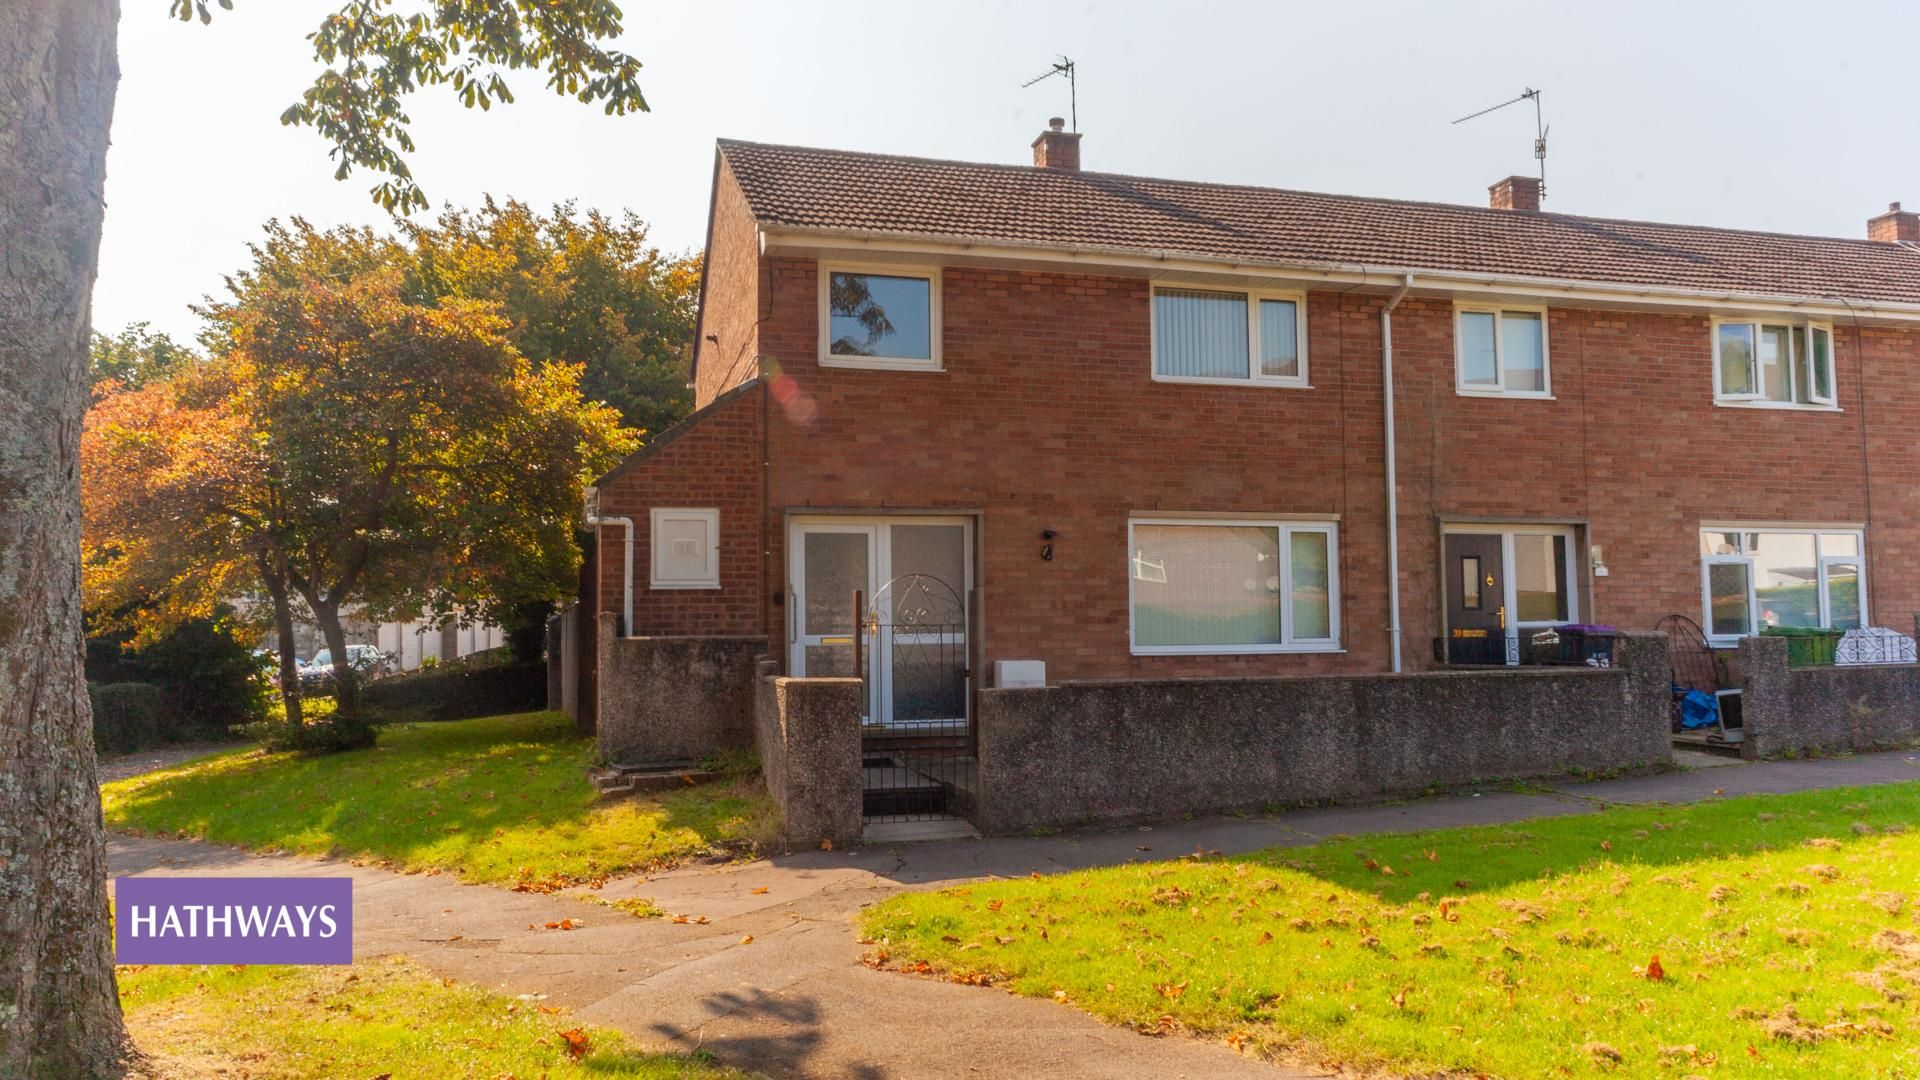 3 bed house for sale in Rhiw Melin, NP44